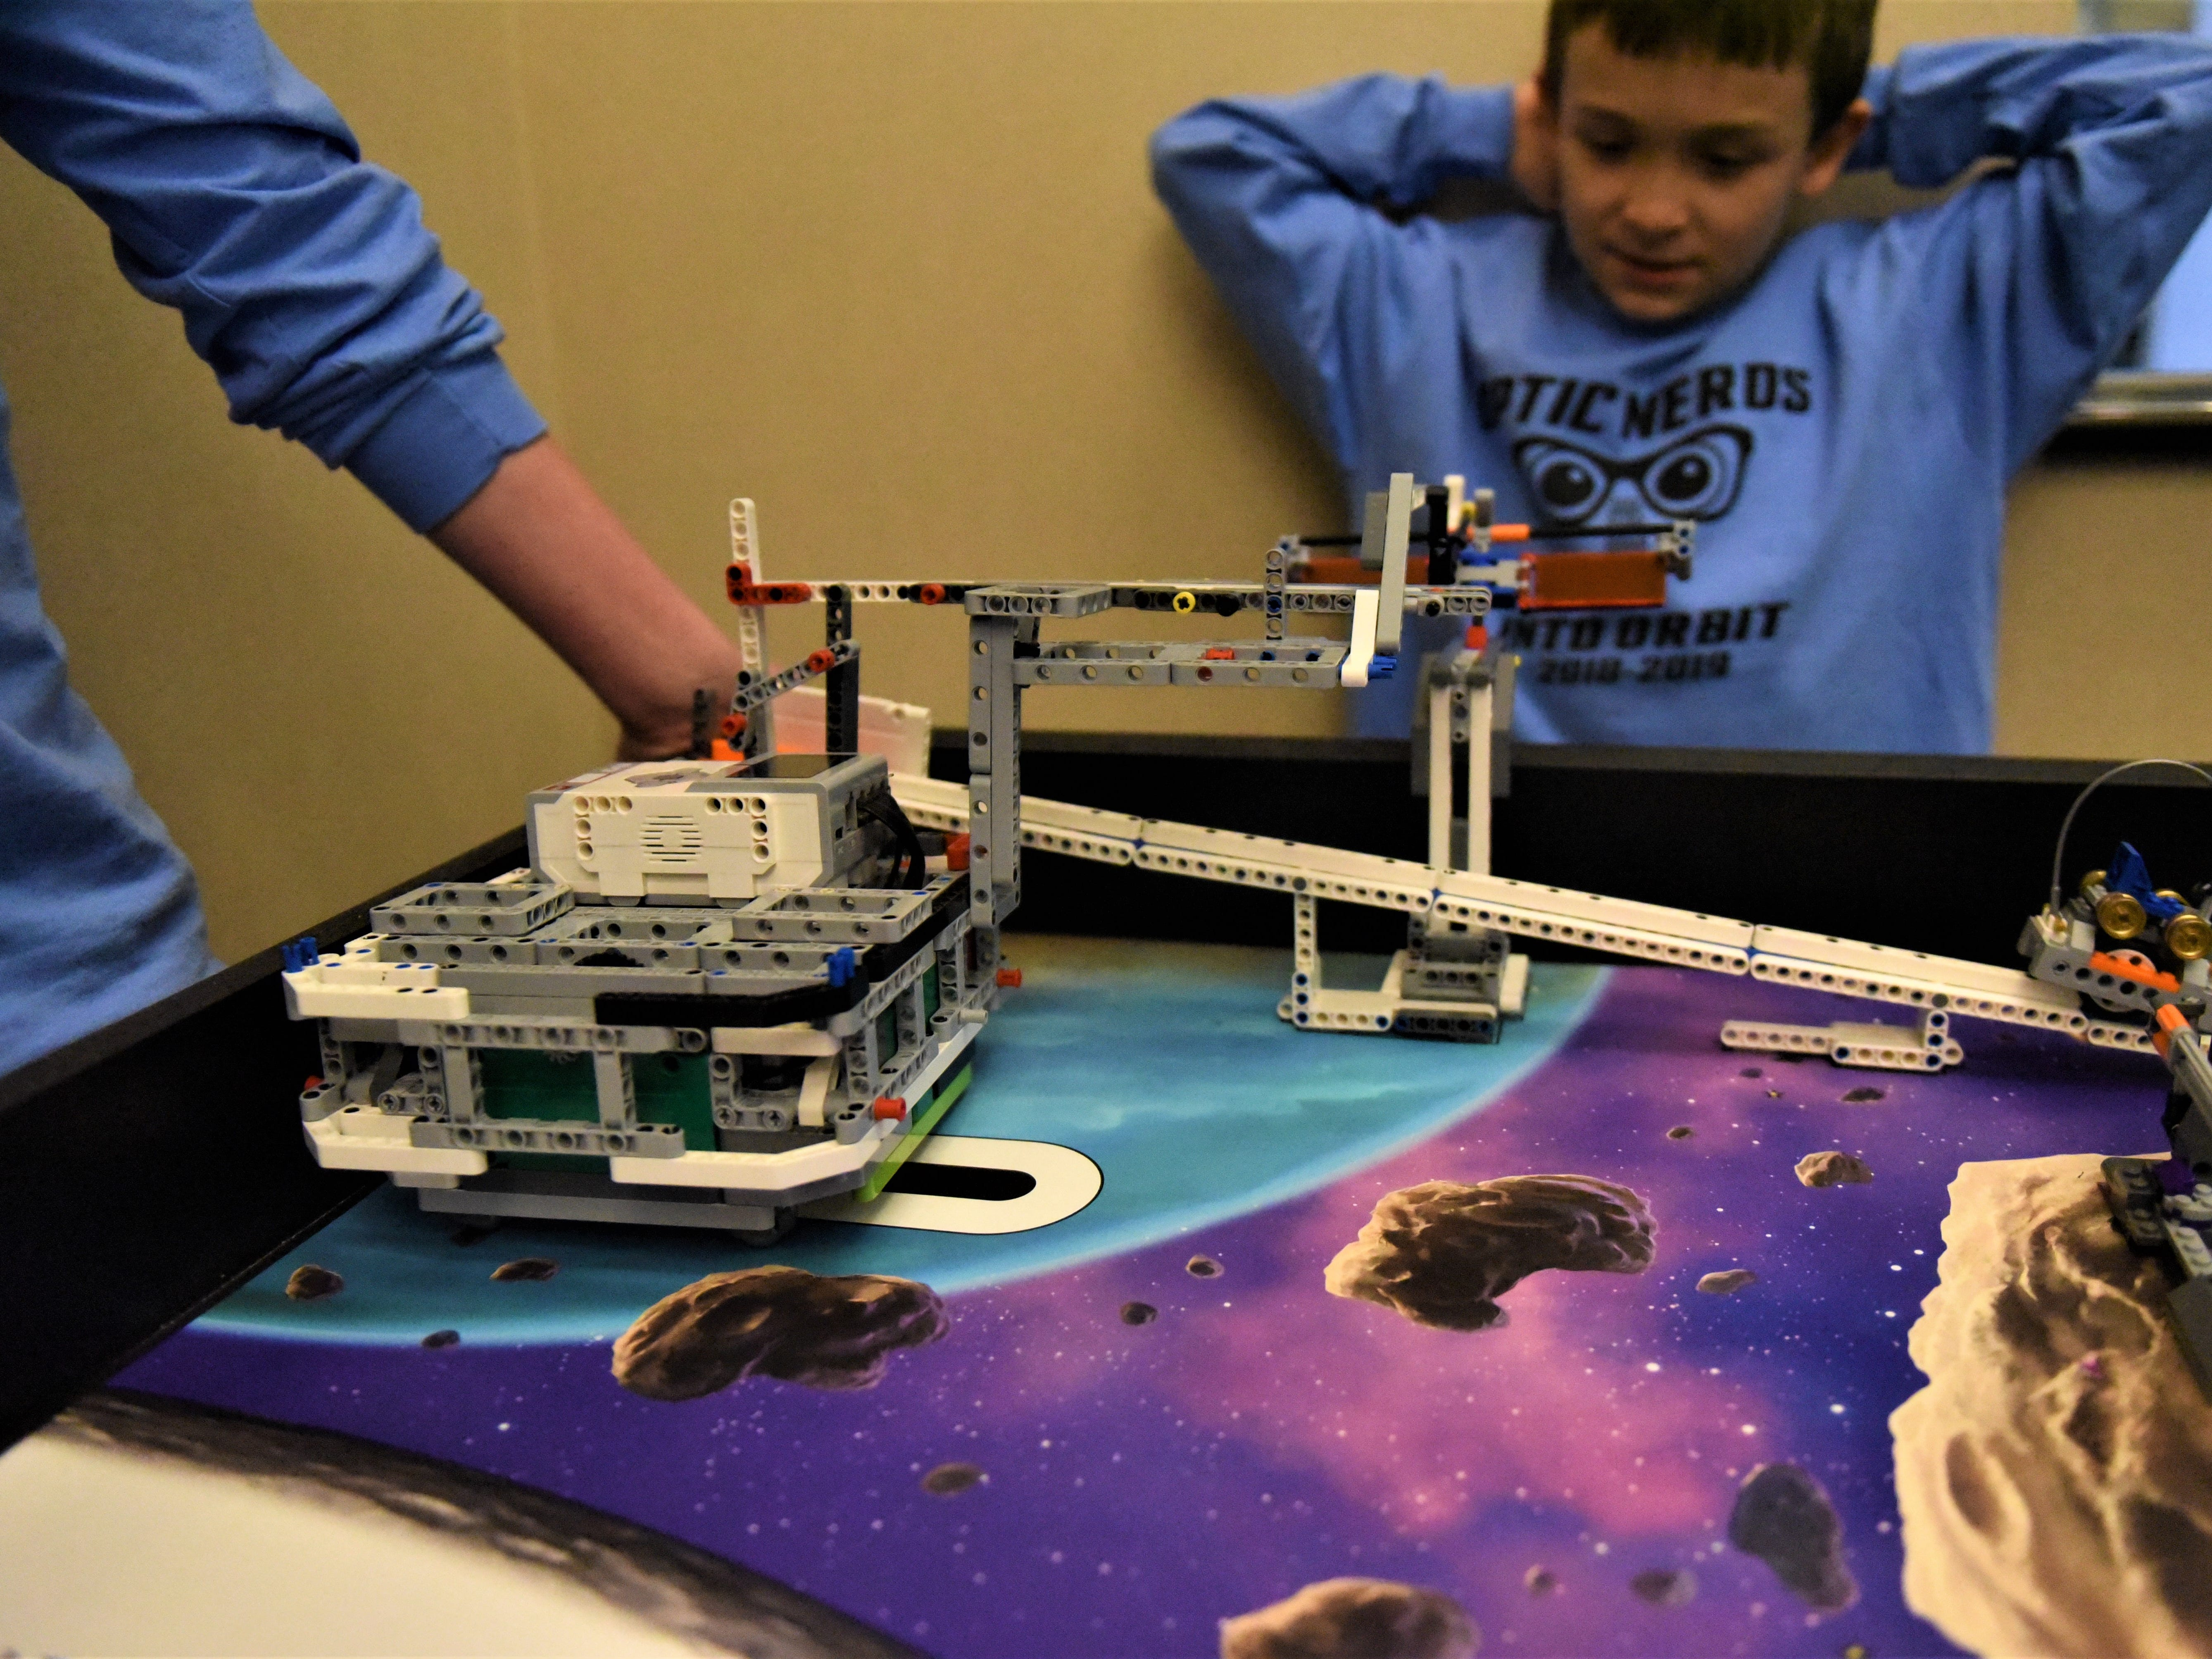 Harrison Roth, 9, watches as the robot completes a task. The Optic Nerds team name is a play on words, stemming from optic nerves. The theme of the robotics competition is Into Orbit, and astronauts often develop vision problems in space because their optive nerves swell and warp.